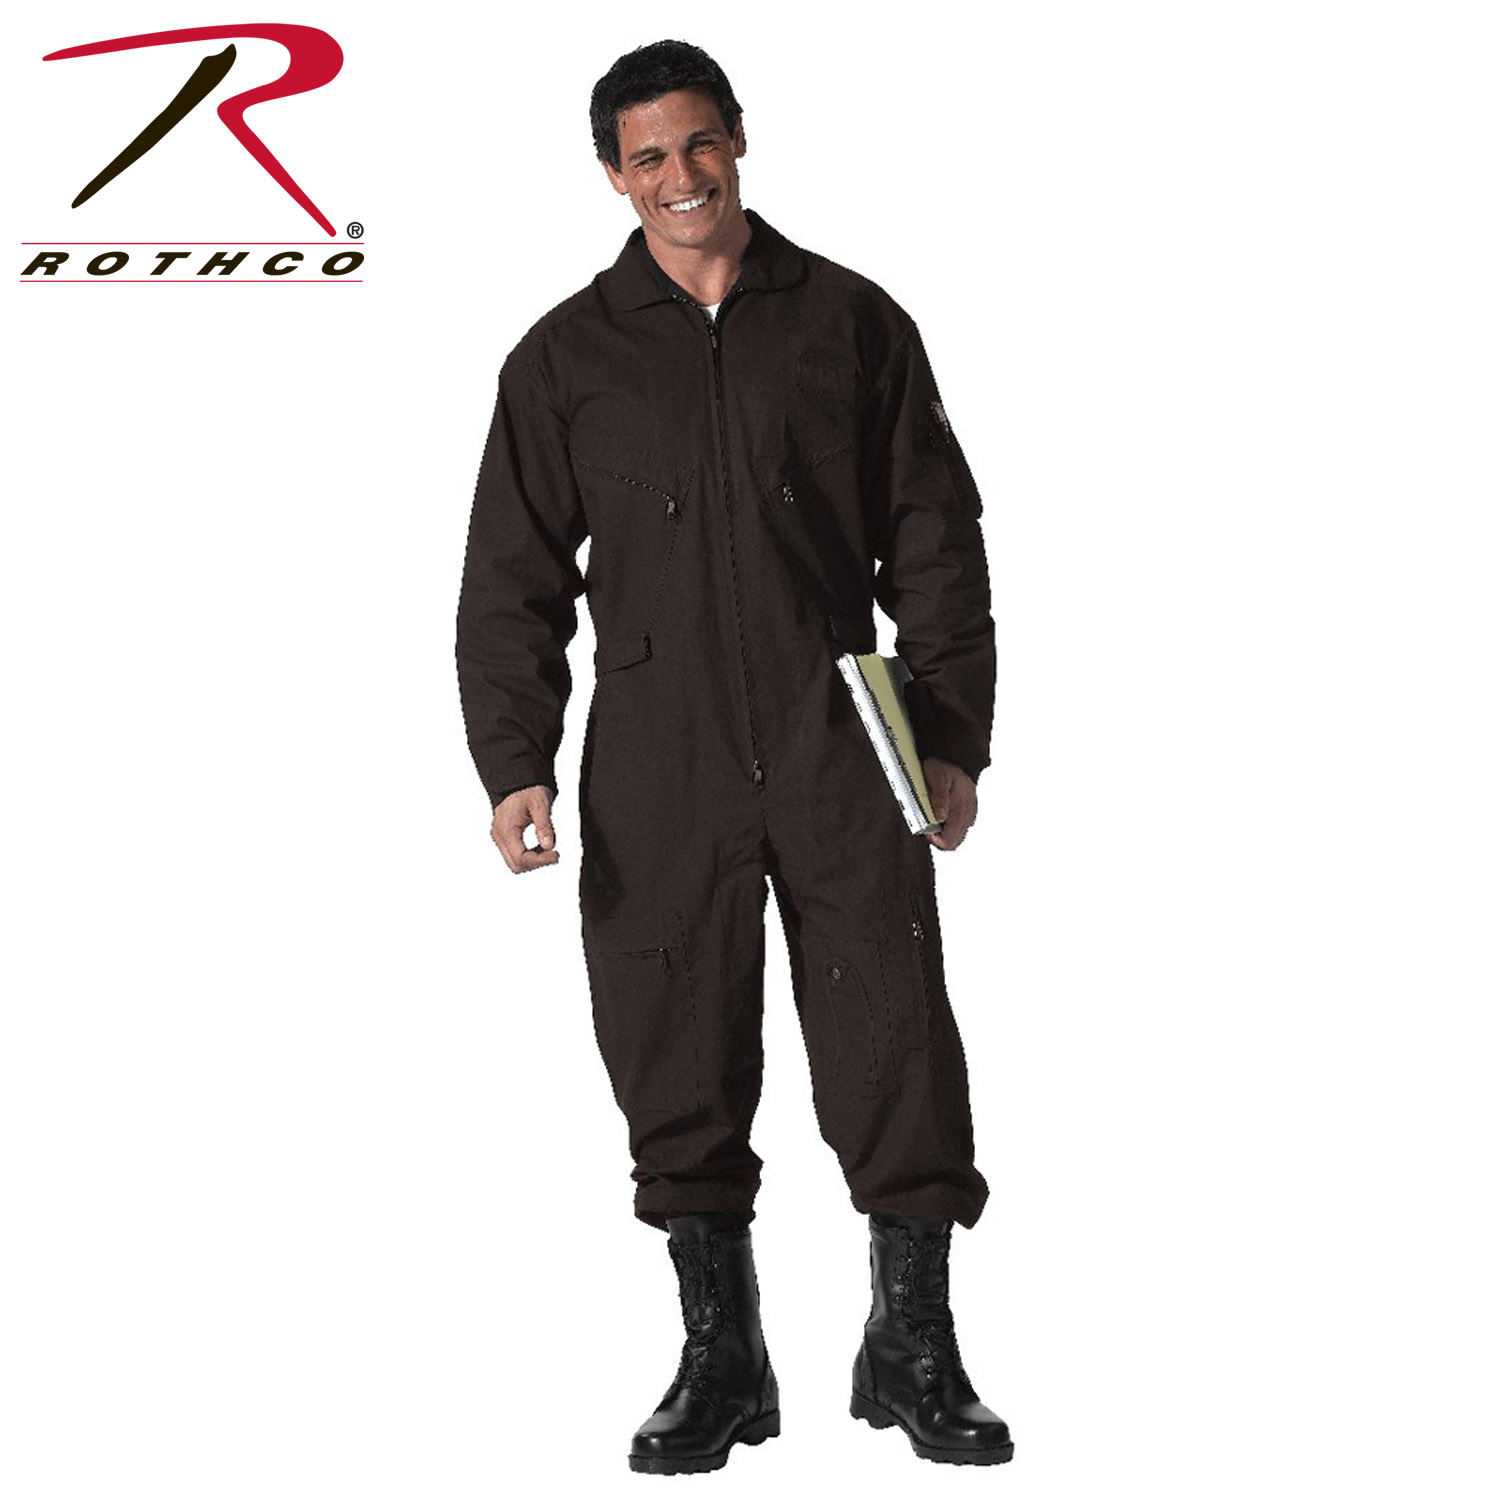 ed6763edf1b Rothco Flightsuits